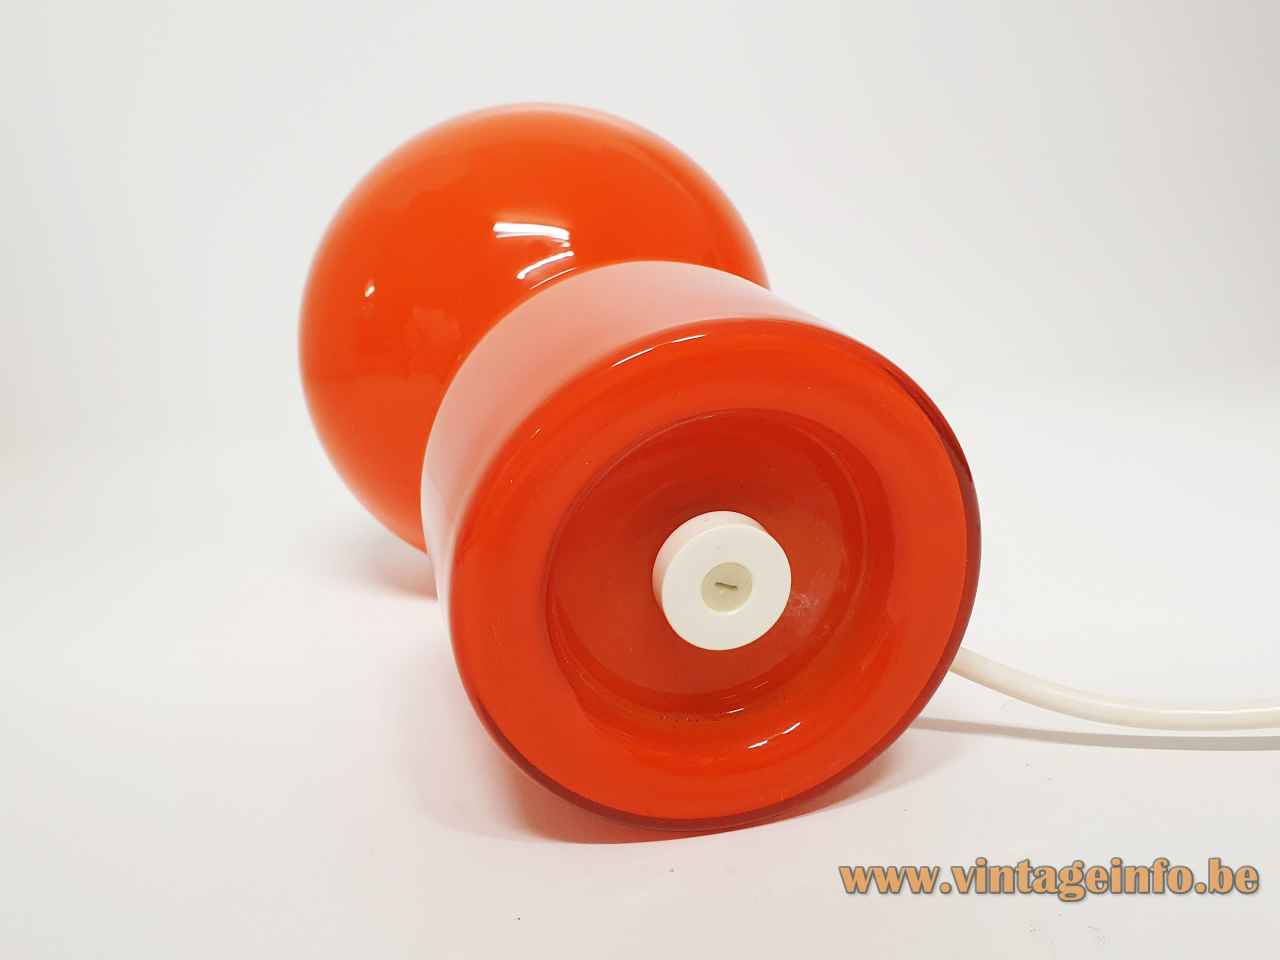 Philips Tahiti table lamp Tobrouk 1960s design: Jean-Paul Emonds-Alt round base orange glas globe lampshade bottom